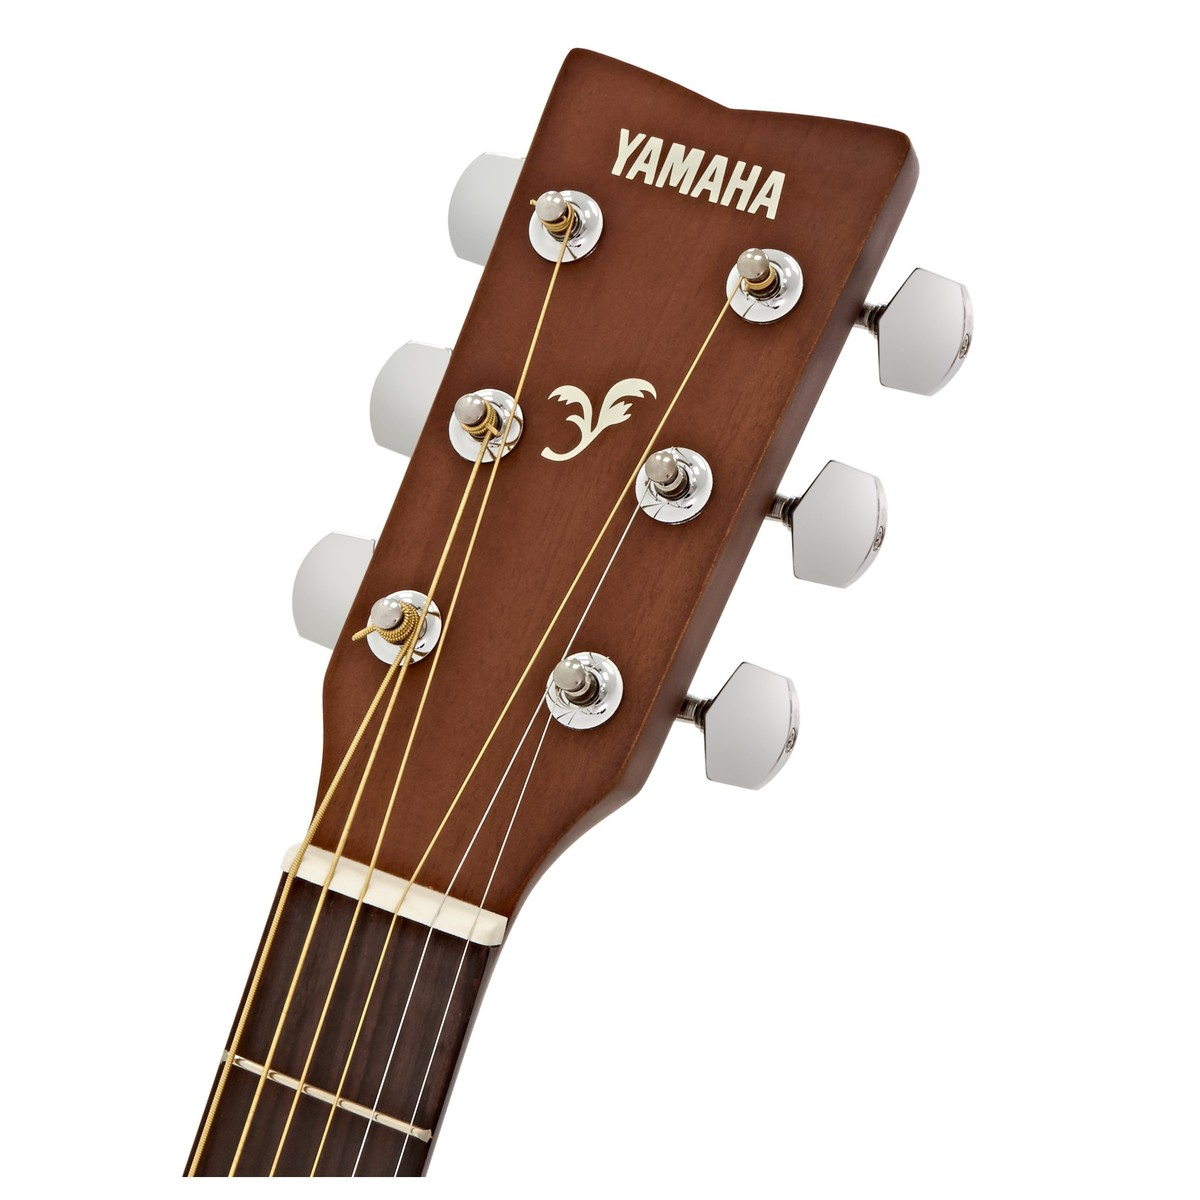 Yamaha f310p2 acoustic guitar beginners pack at for Yamaha acoustic bass guitar